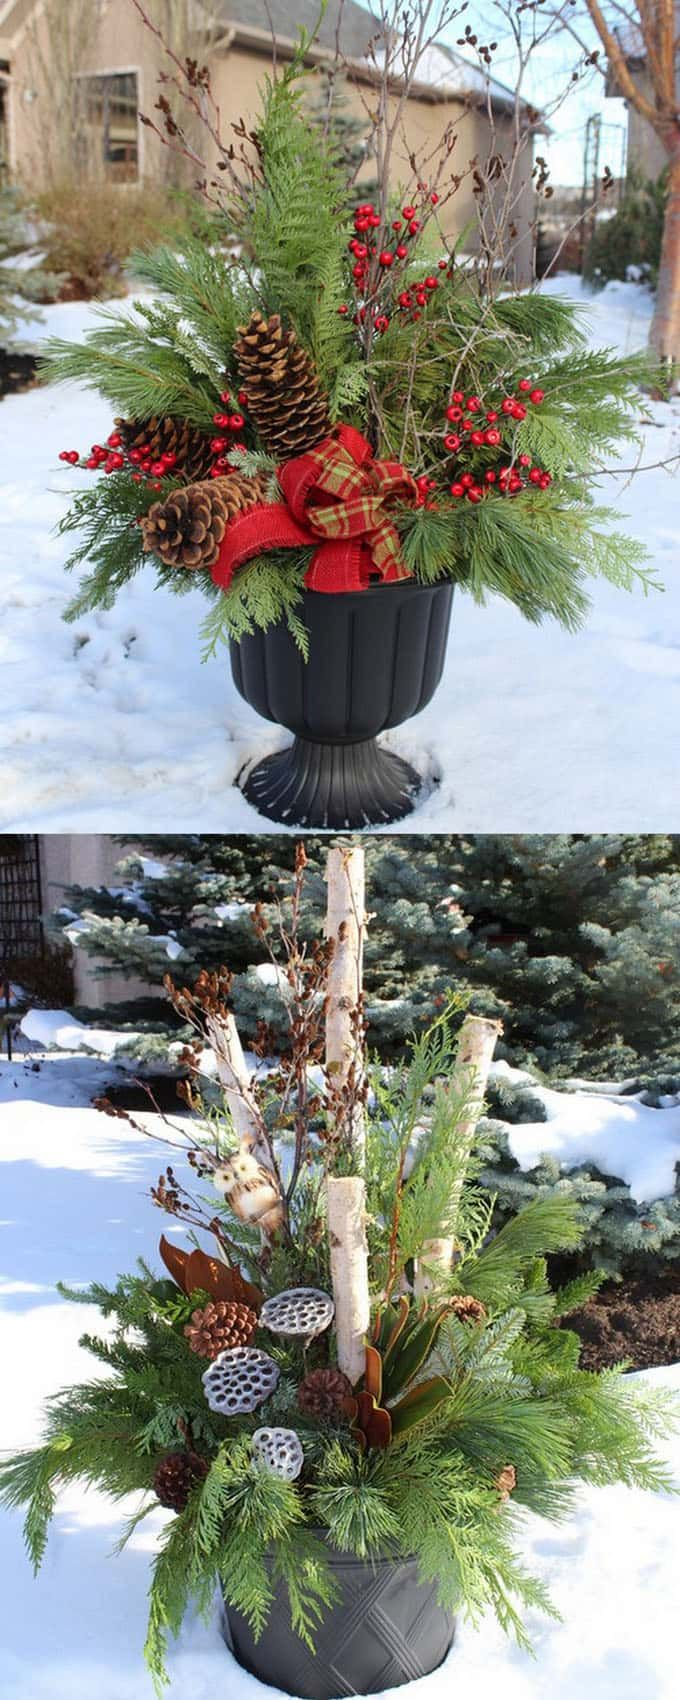 colorful outdoor planters for winter and christmas decorations